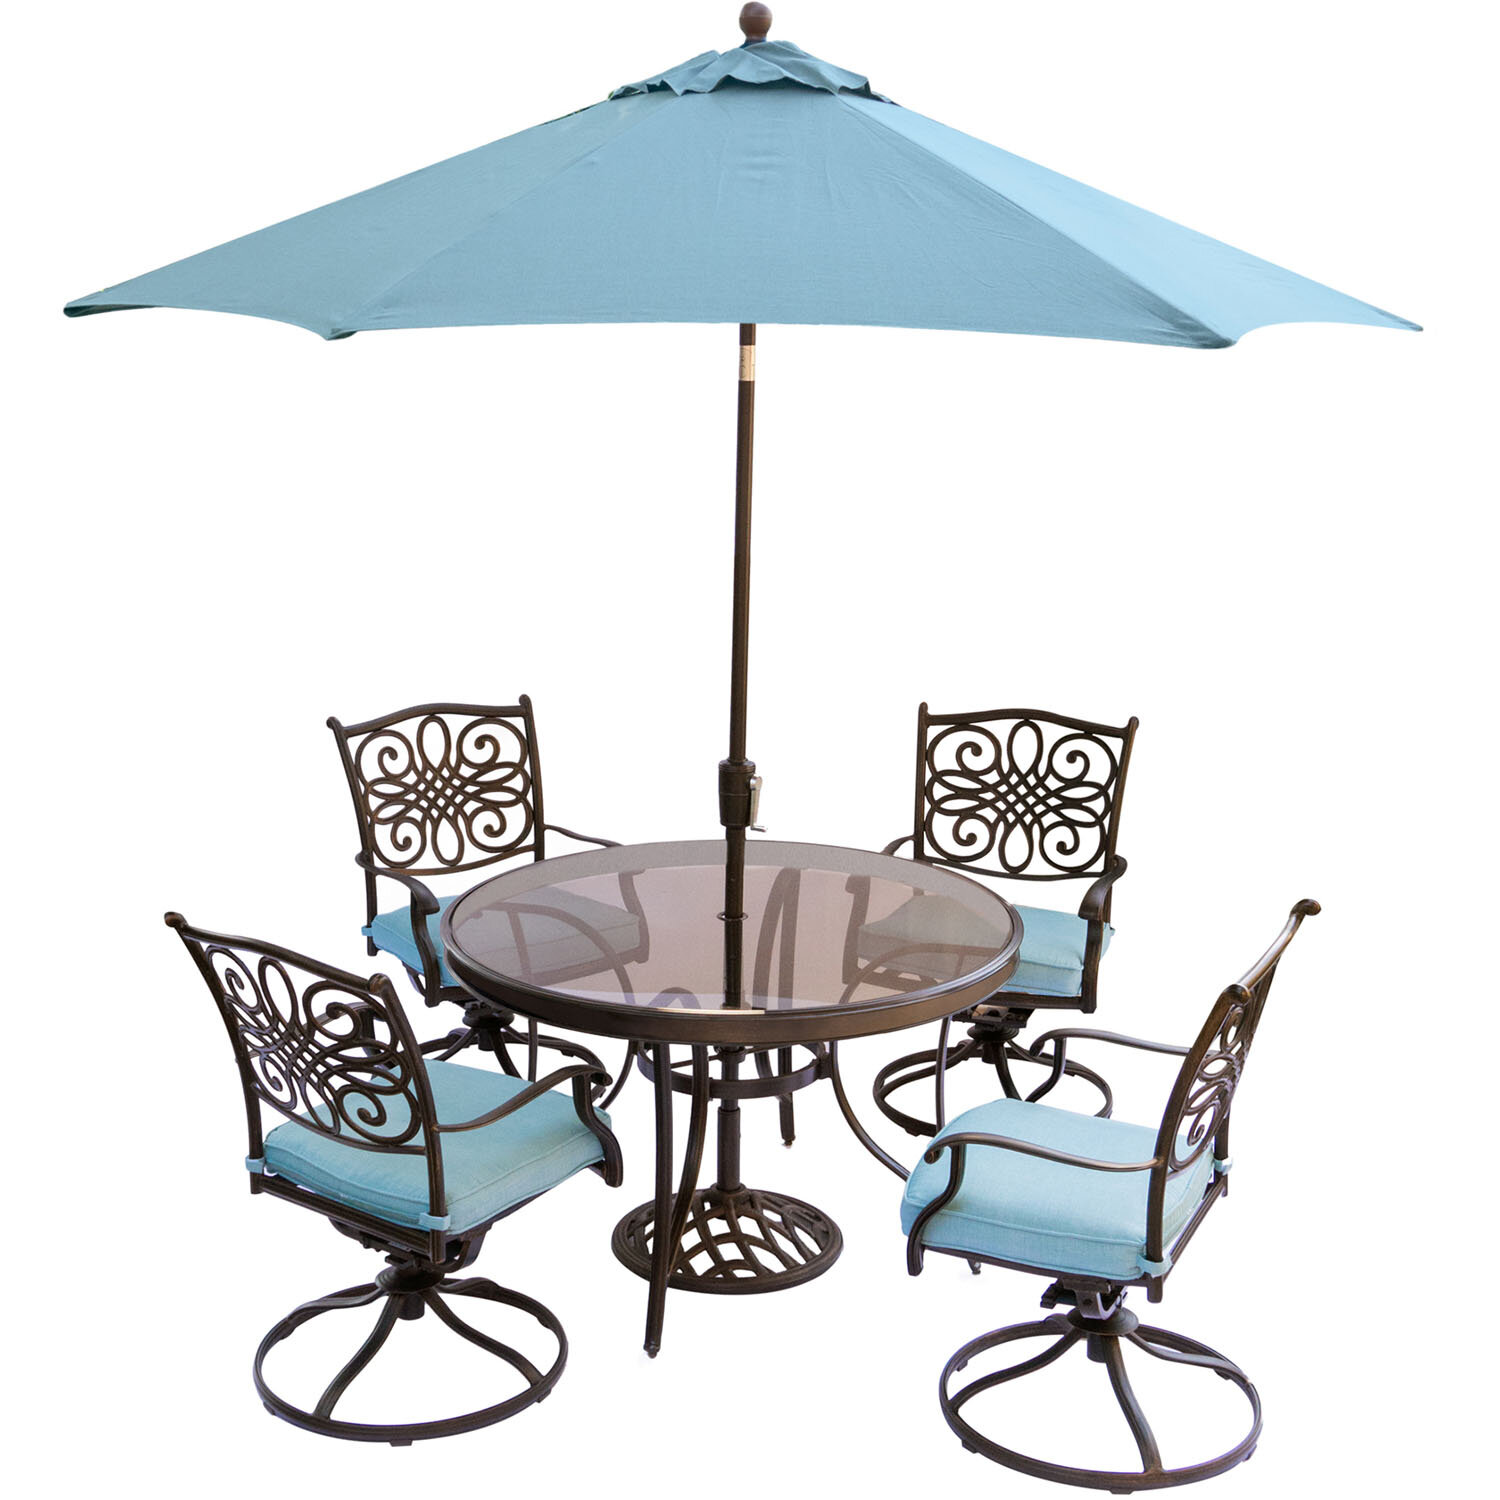 Three posts lauritsen 5 piece dining set with cushions and umbrella wayfair